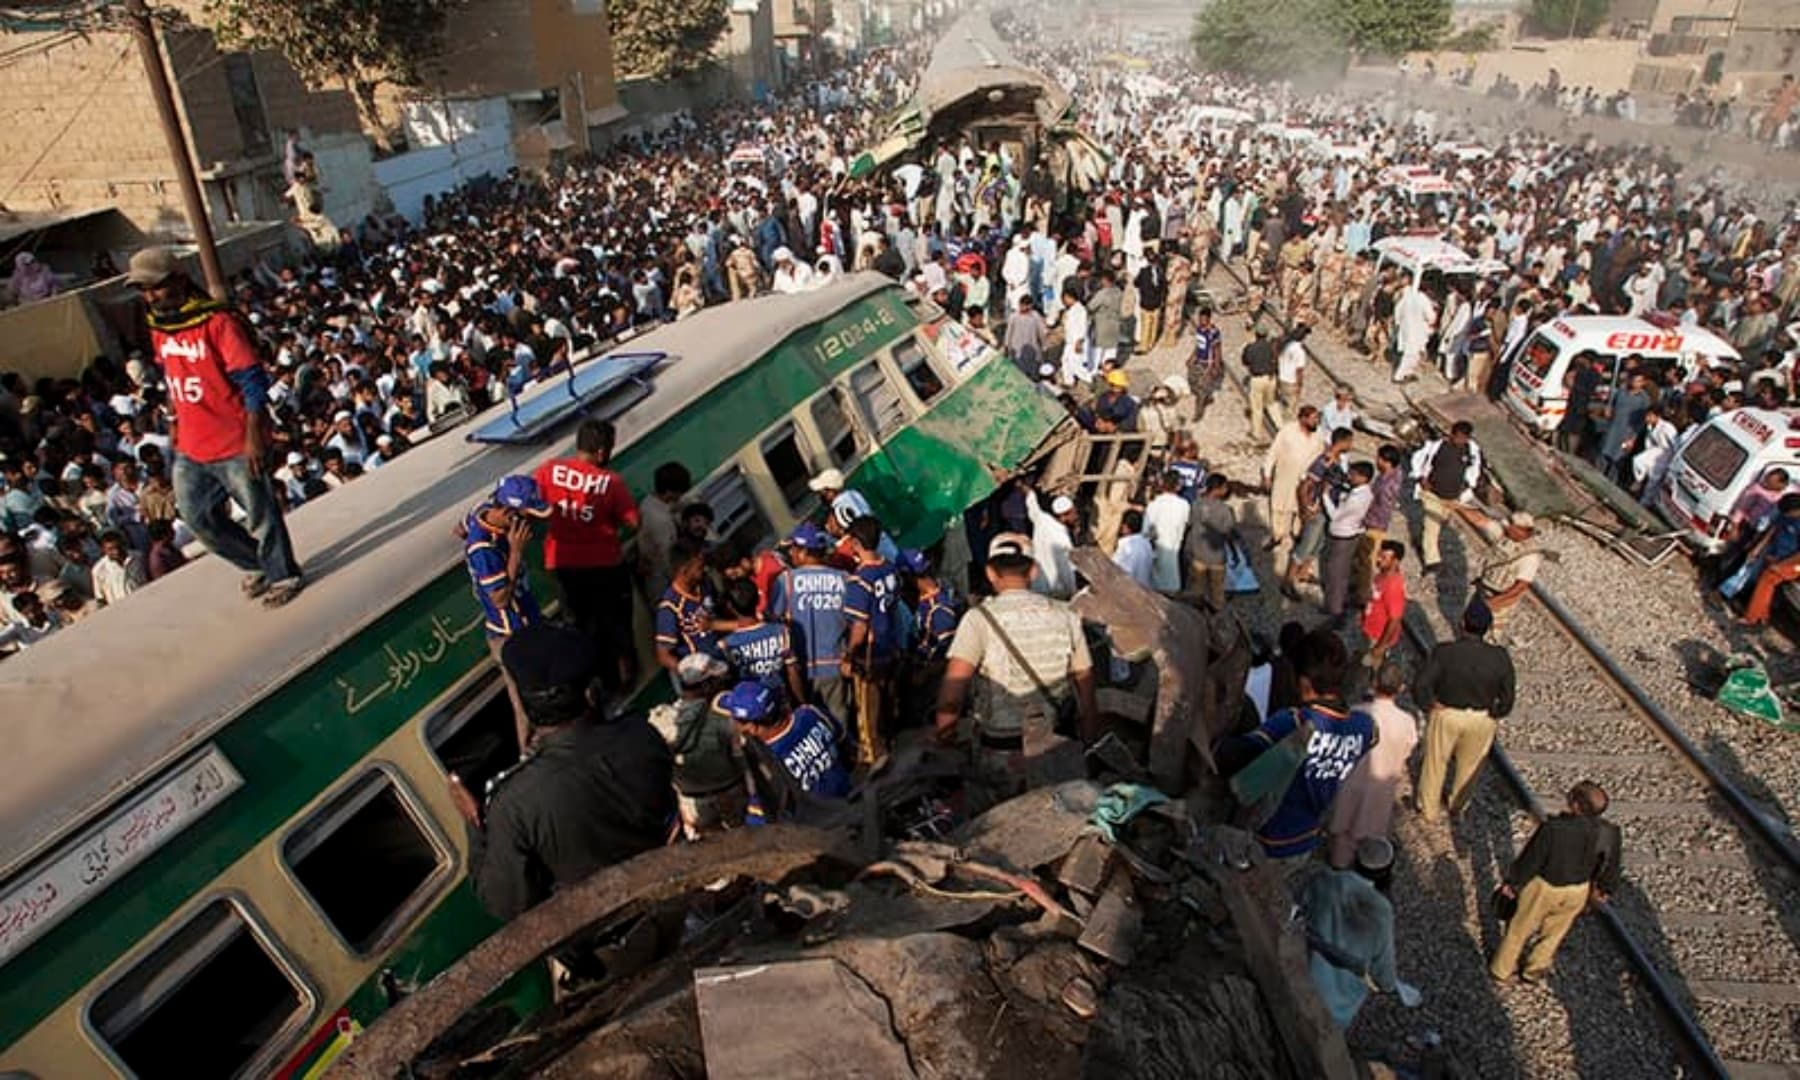 People look for victims in the wreckage of the trains in Karachi, Nov 3, 2016. — AP/File